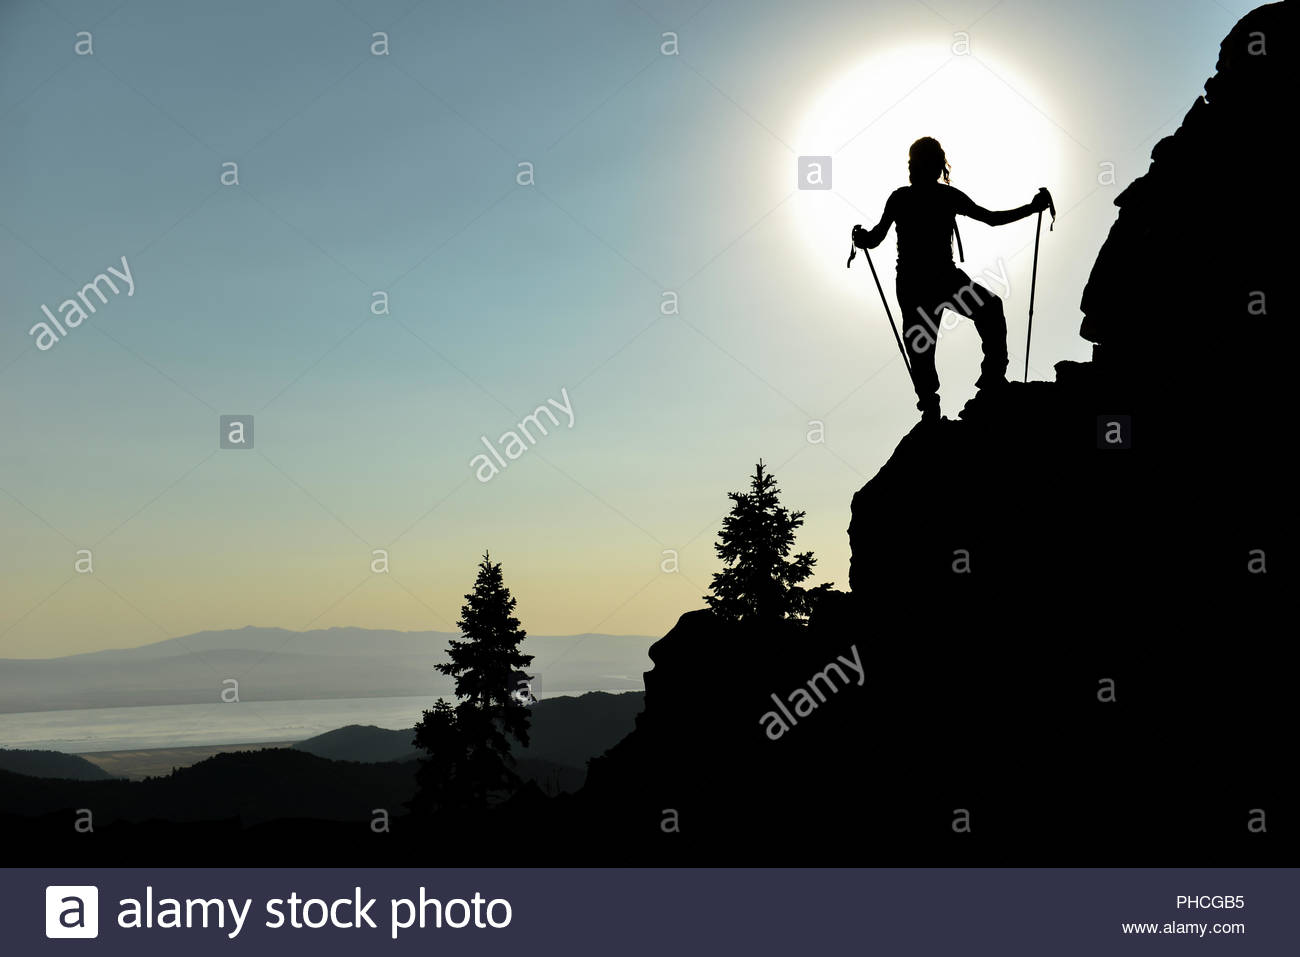 inspired by nature  target success - Stock Image